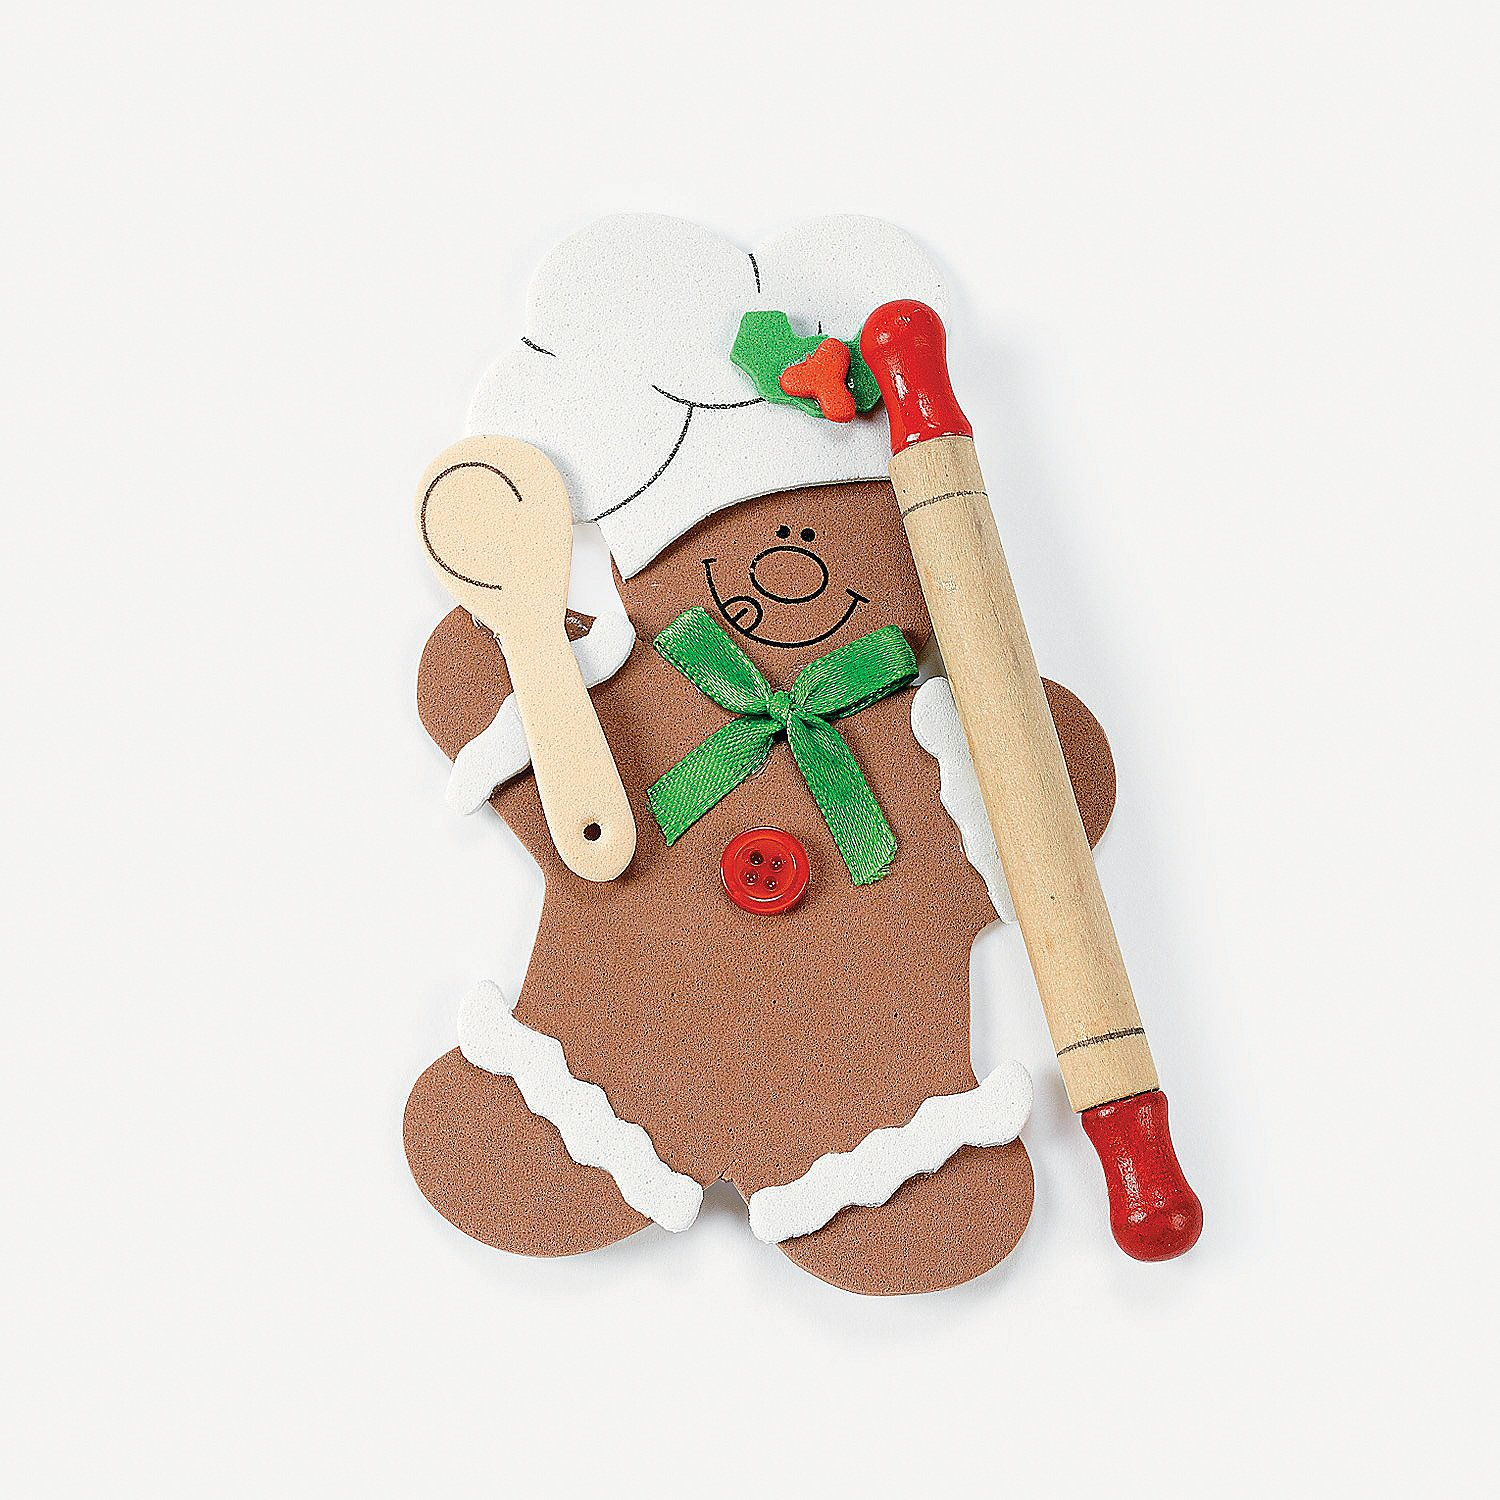 Gingerbread man ornament craft - Gingerbread Man Rolling Pin Ornament Craft Kit Orientaltrading Com